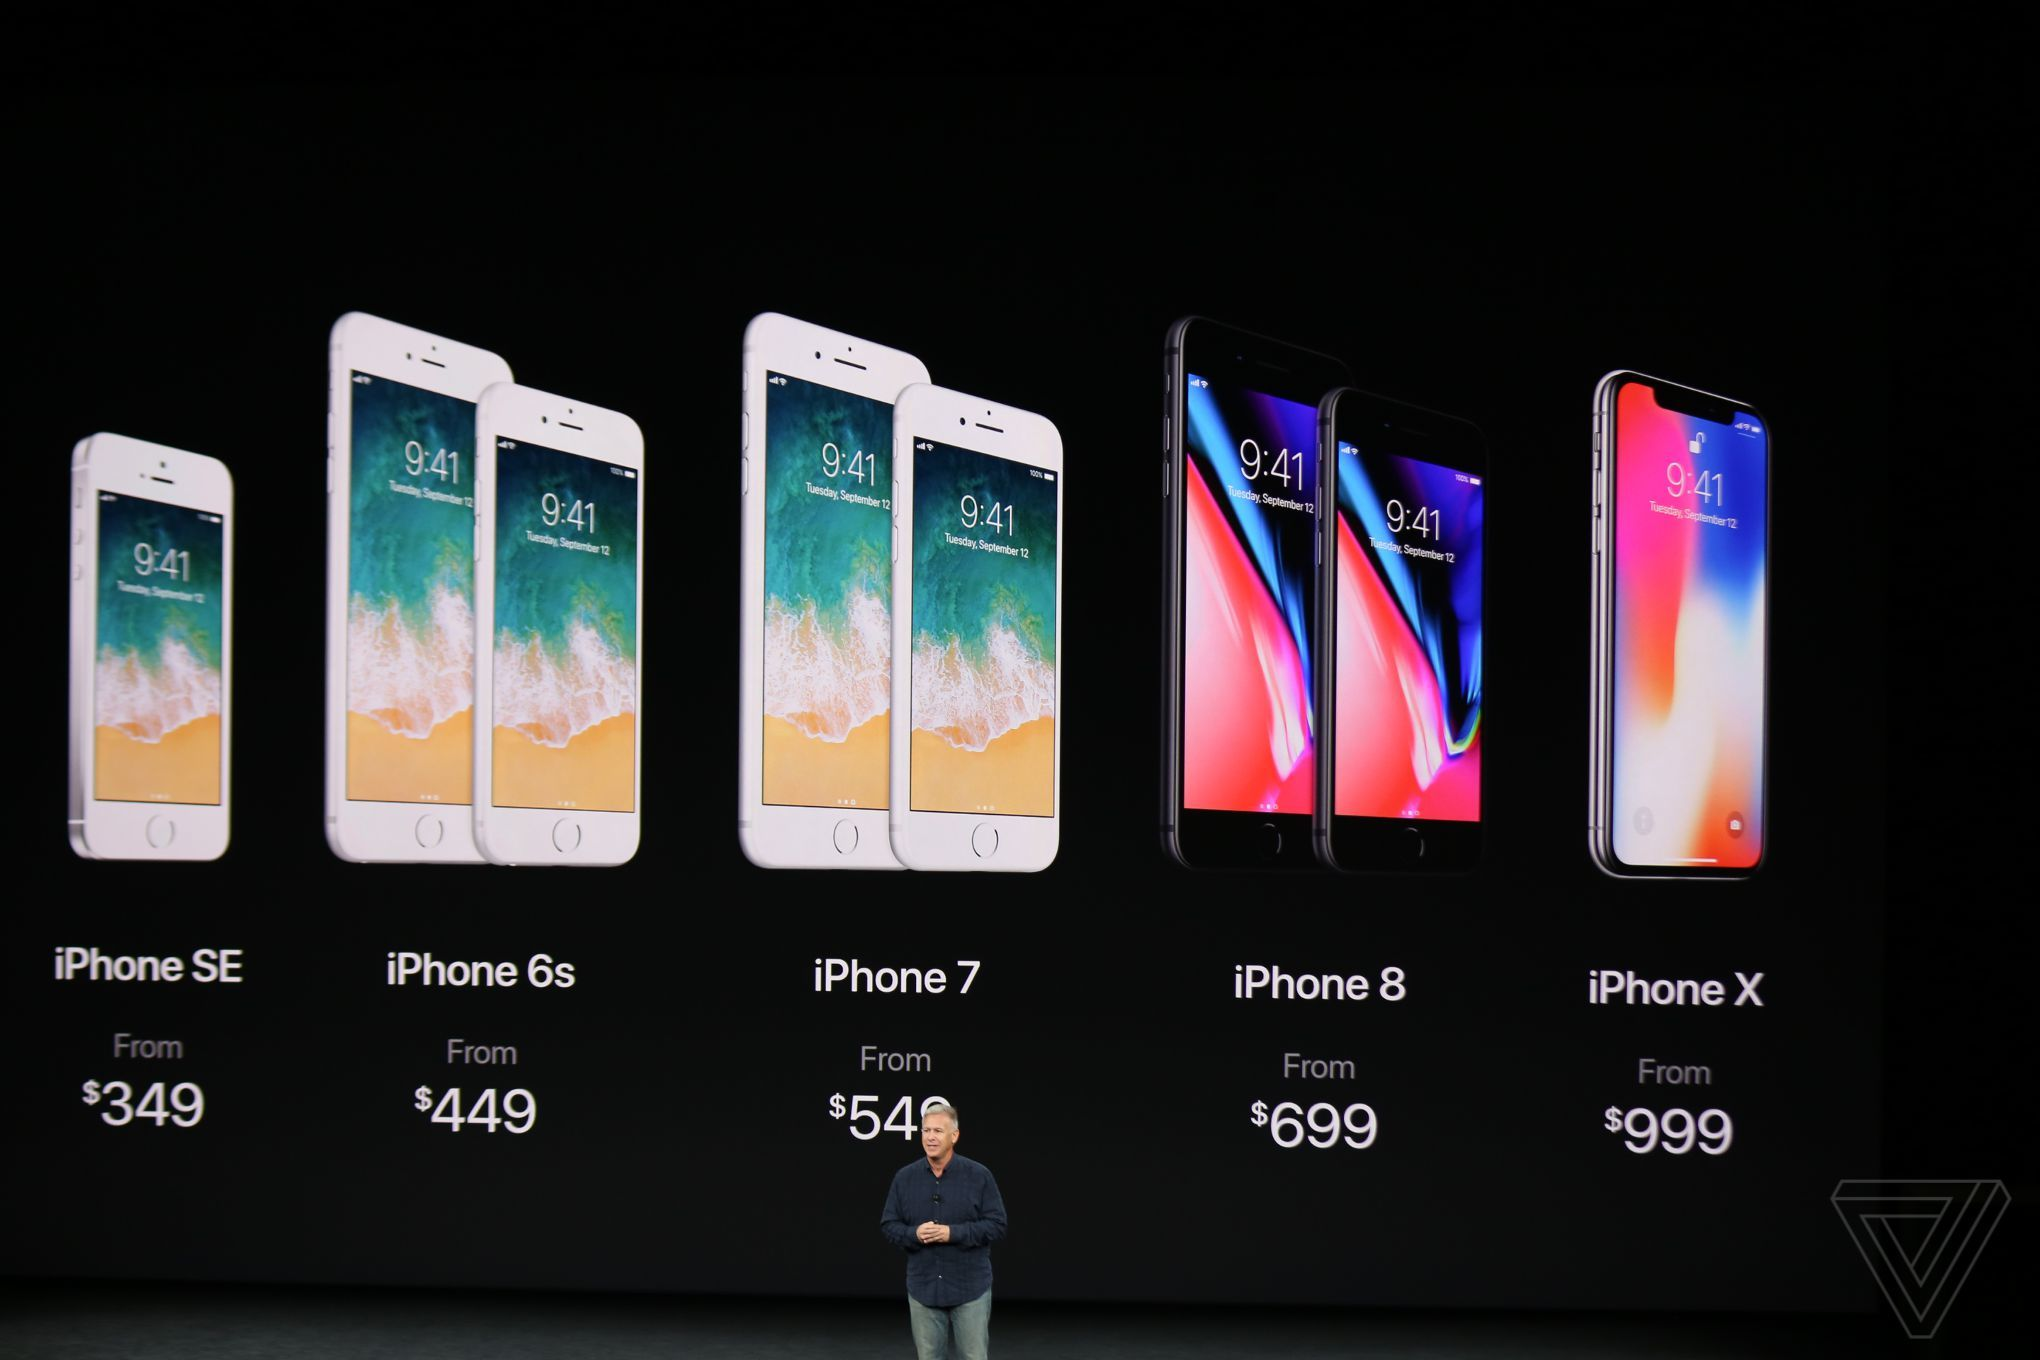 apple-iphone-2017-20170912-12127.JPG